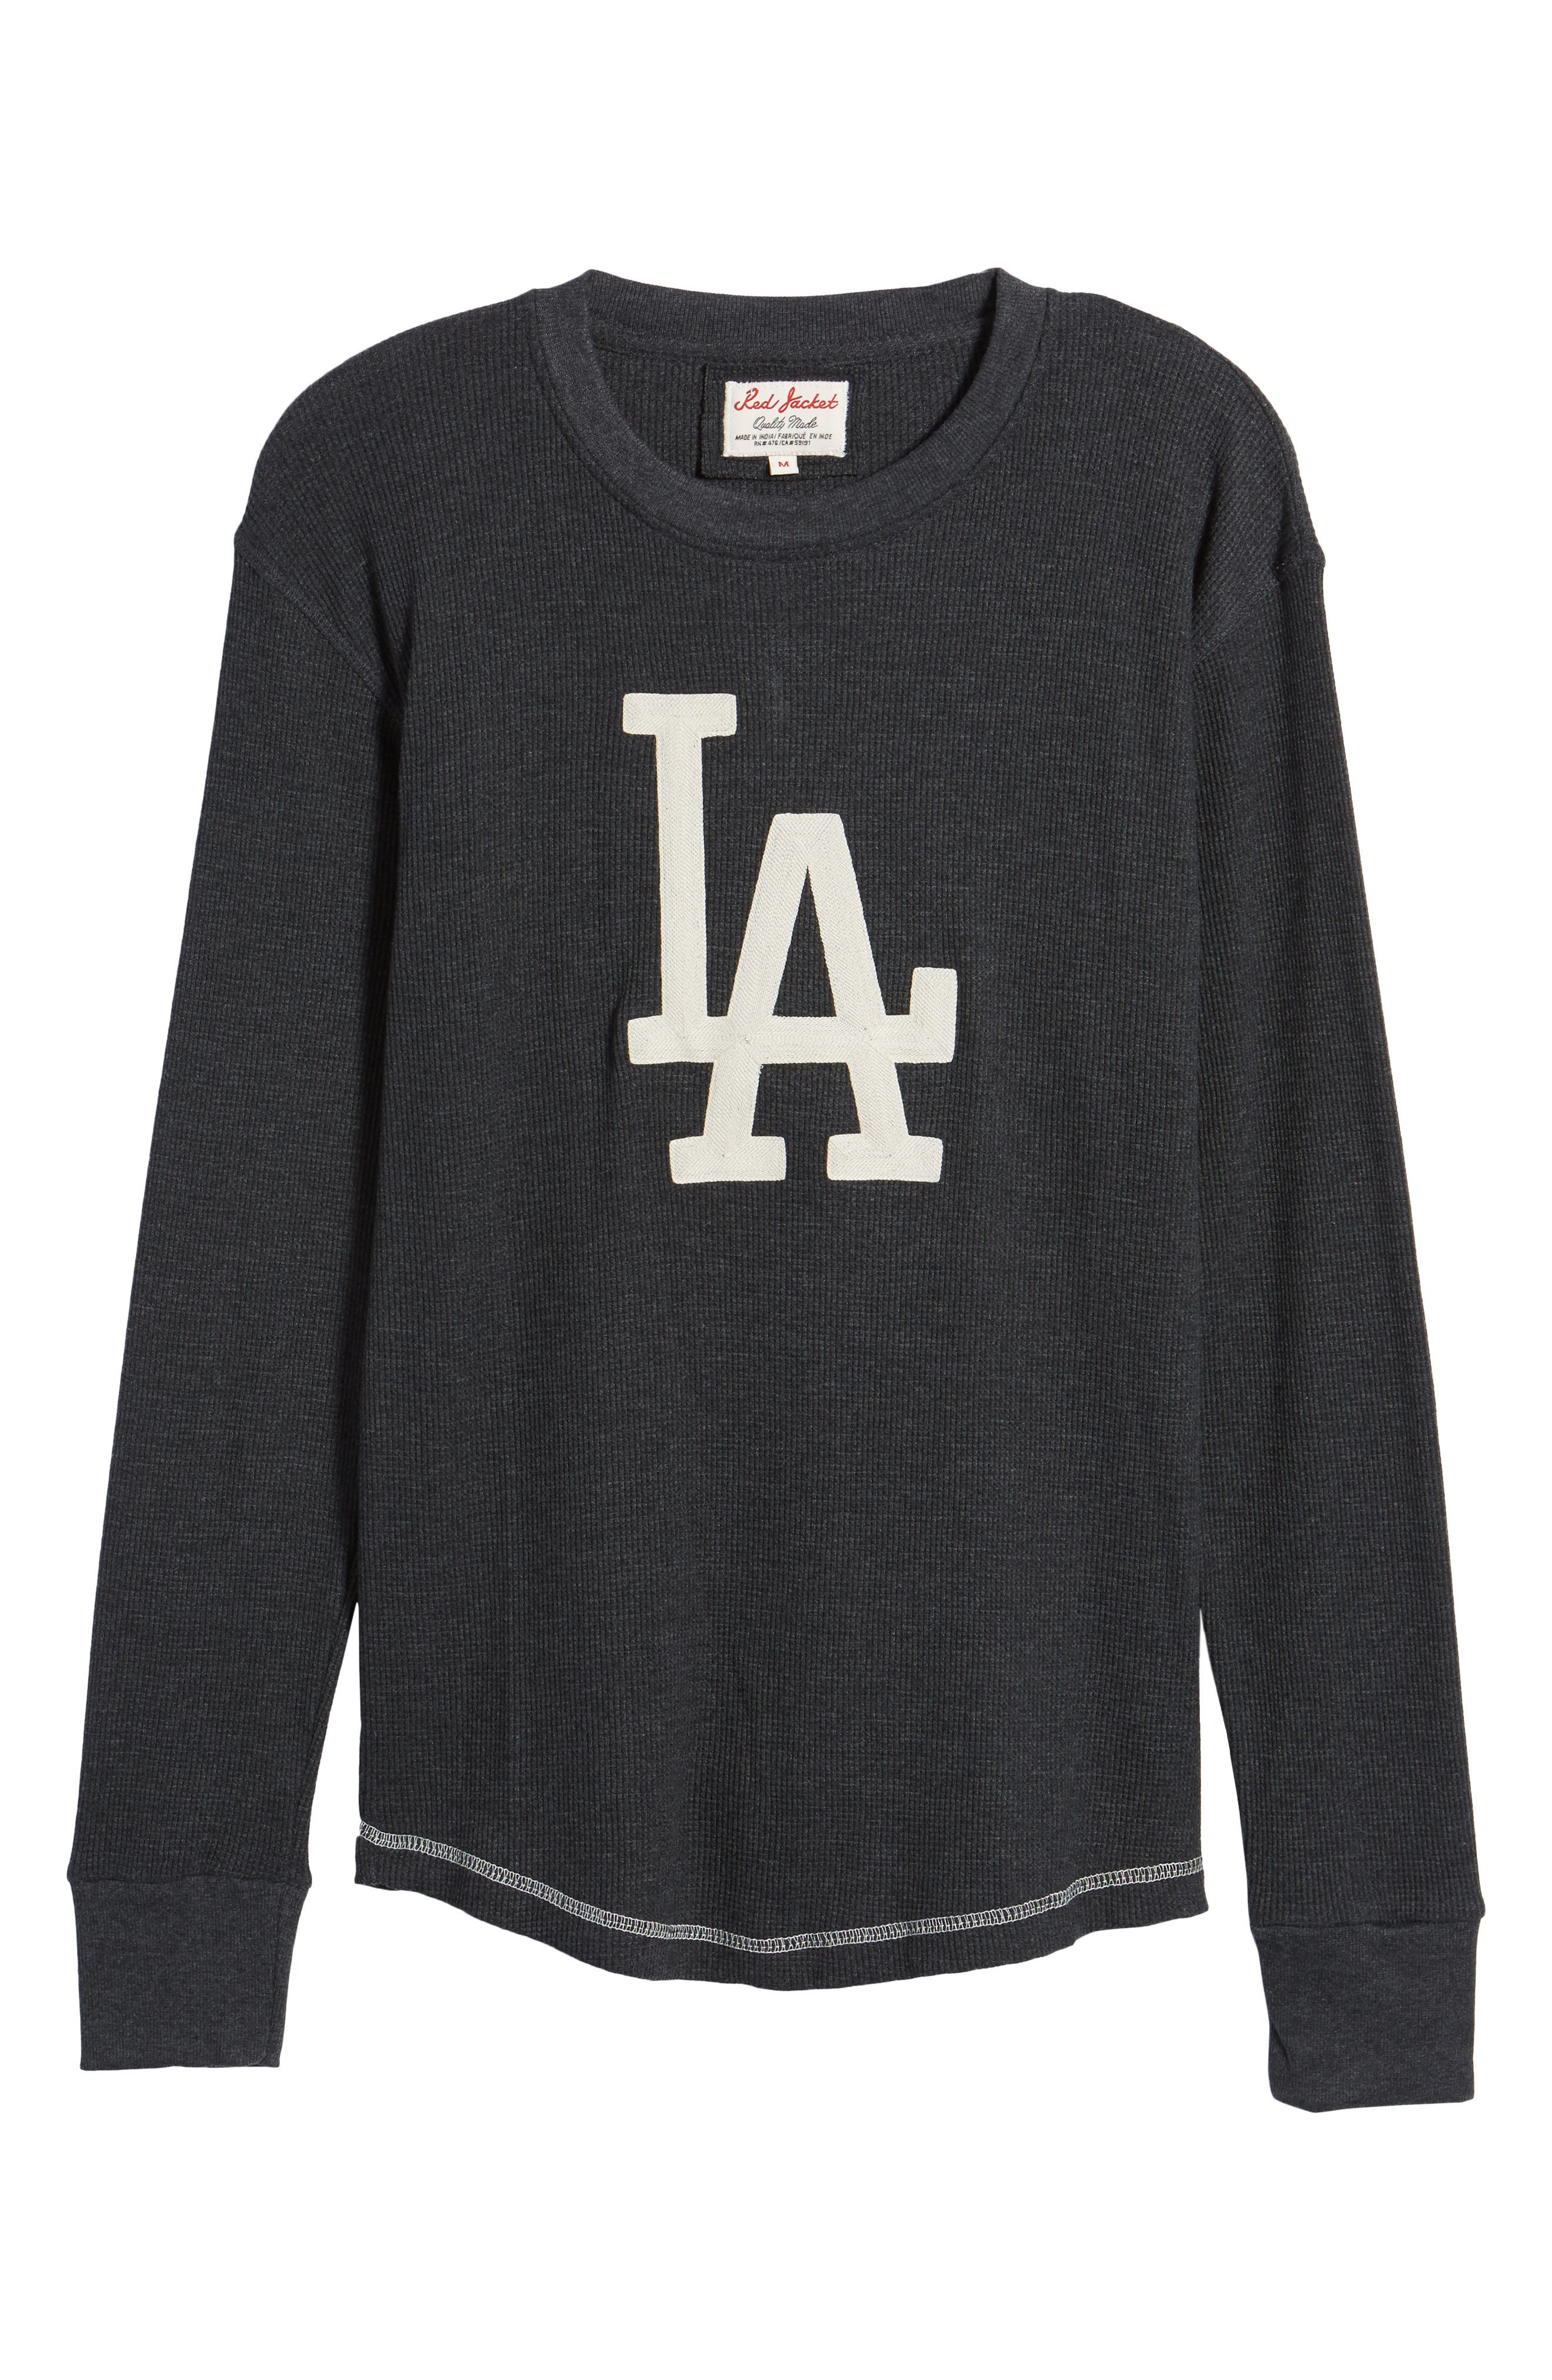 AMERICAN NEEDLE,                             Los Angeles Dodgers Embroidered Long Sleeve Thermal Shirt,                             Alternate thumbnail 6, color,                             001